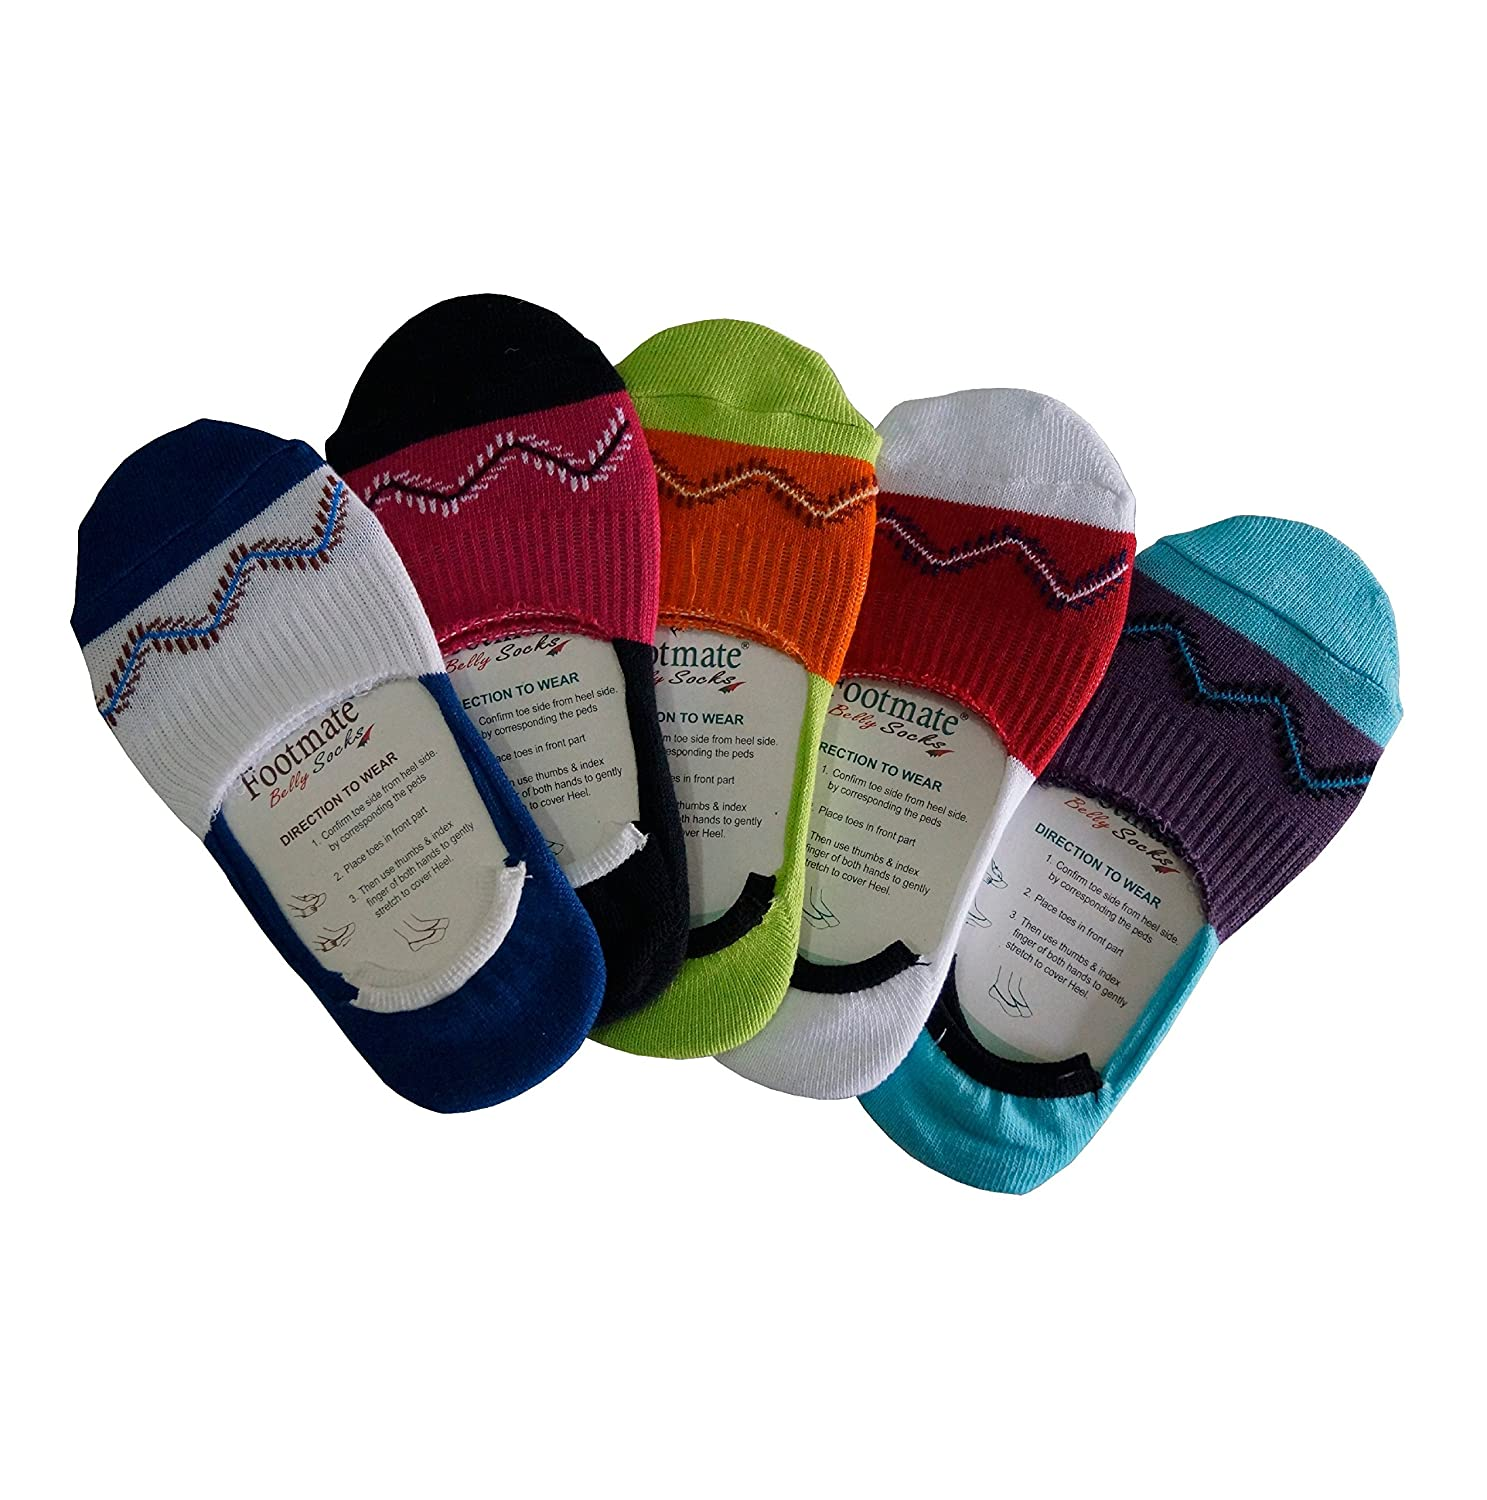 e8e7e6177 Footmate Socks Women's Cotton Lycra No Show Belly Socks (4293, Multicolour,  Free Size) - 5 Pair Pack: Amazon.in: Clothing & Accessories